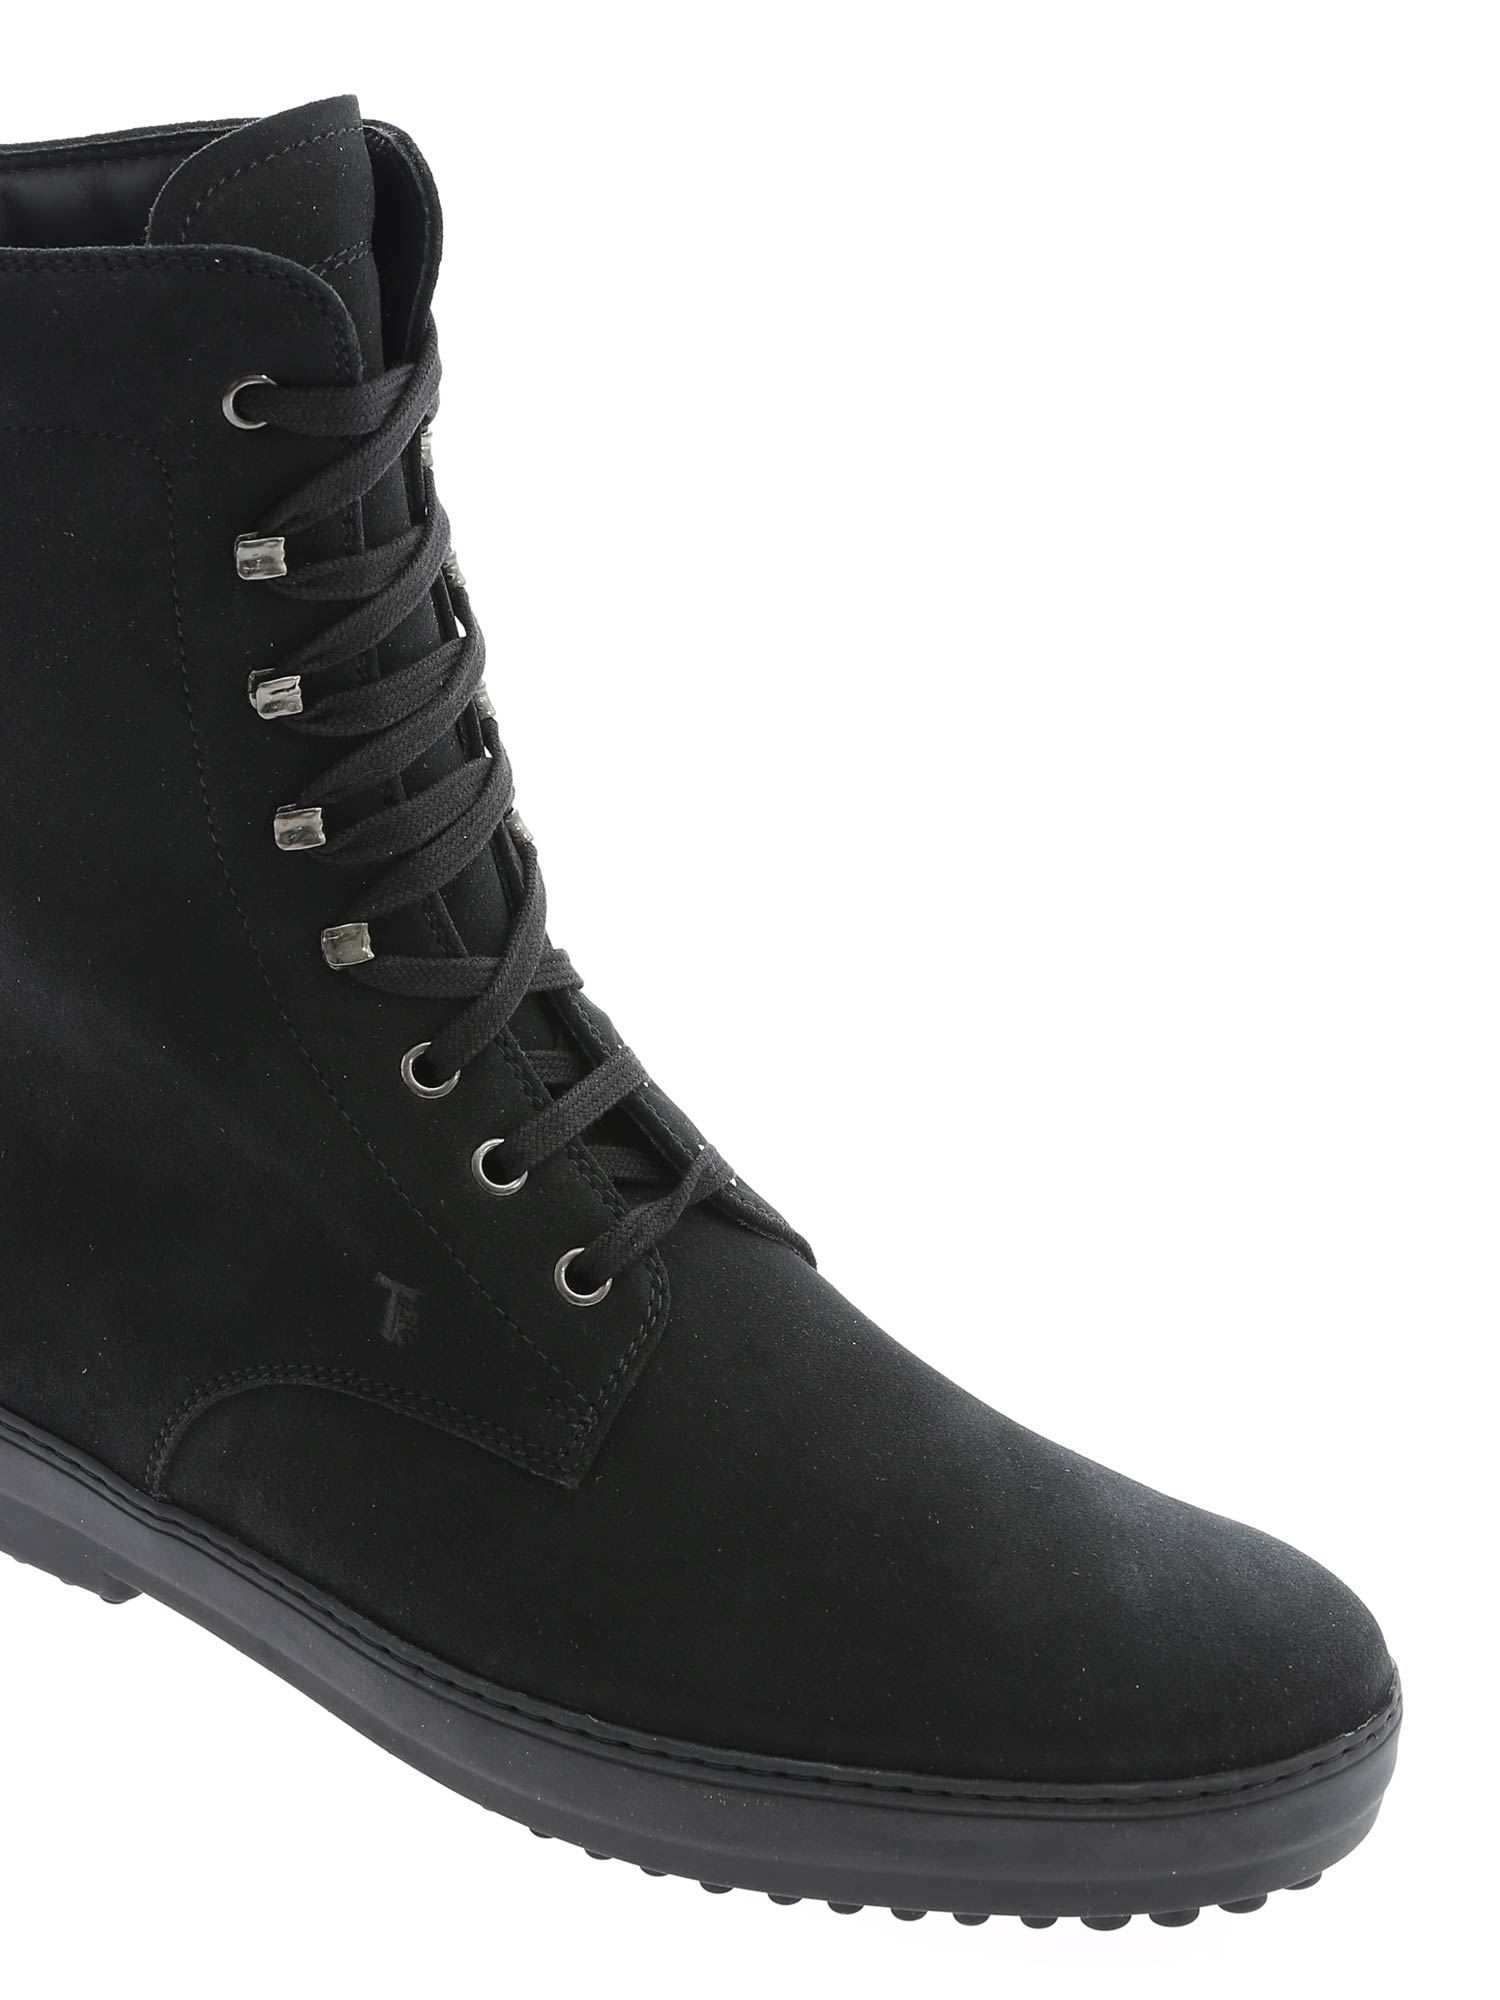 LOGO SUEDE ANKLE BOOTS IN BLACK TOD